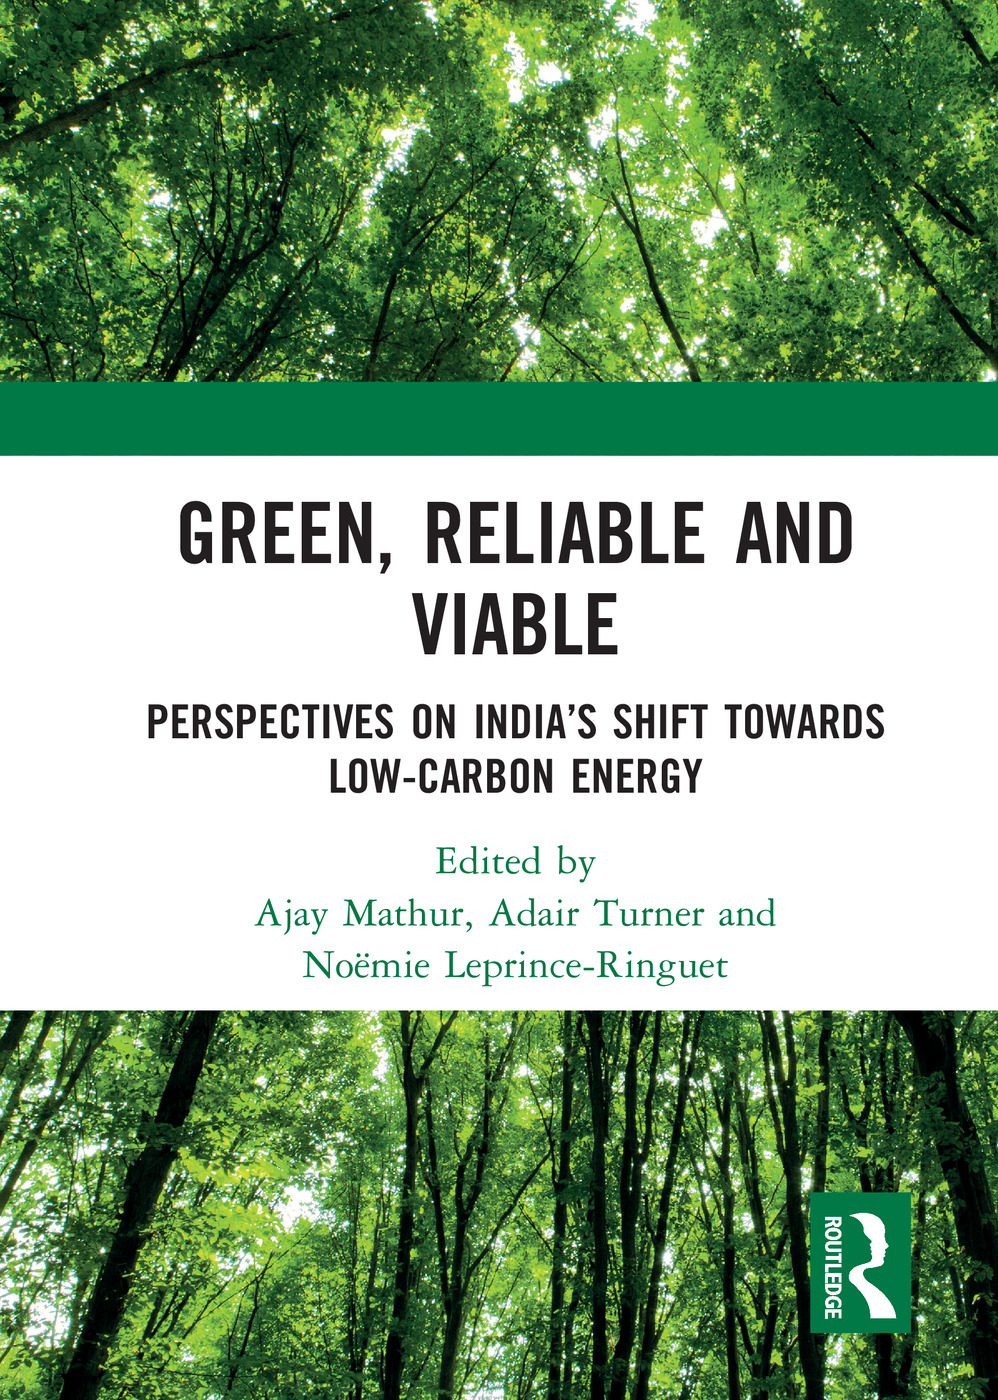 Green, Reliable and Viable: Perspectives on India's Shift Towards Low-Carbon Energy: Perspectives on India's Shift Towards Low-Carbon Energy book cover